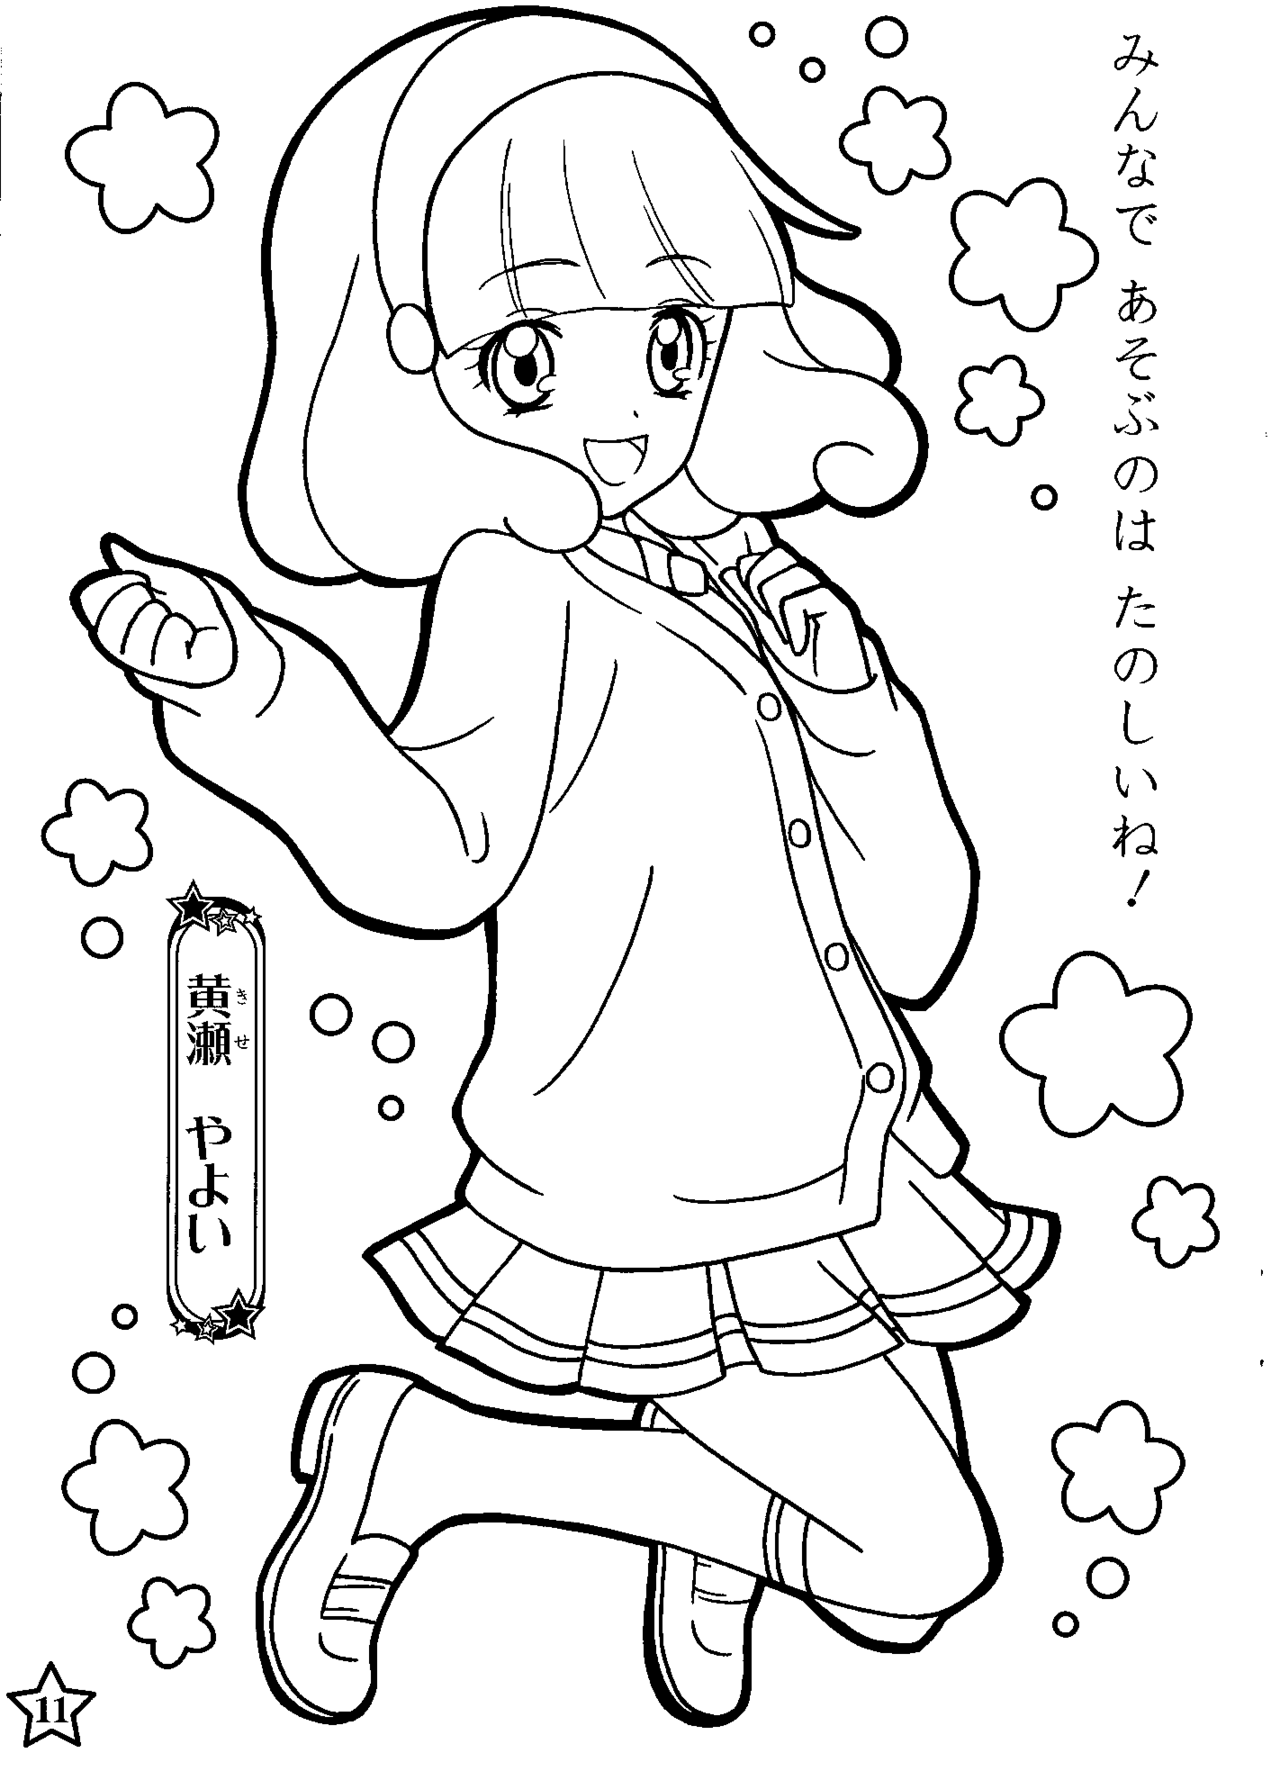 pretty cure coloring pages - Google Search | Maha 3 | Pinterest ...